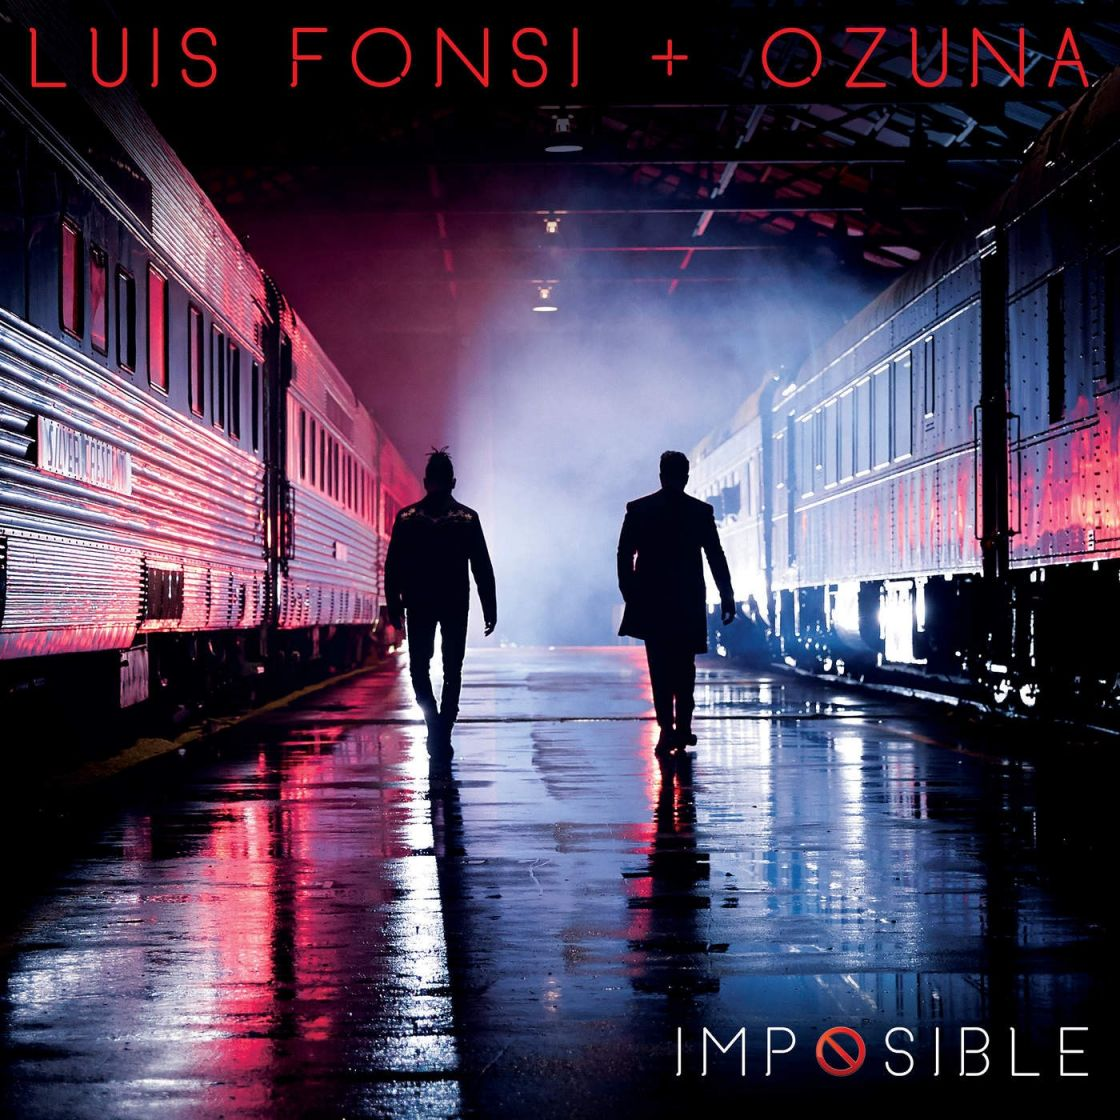 Mp3 Download Luis Fonsi Imposible Ft Ozuna With Images